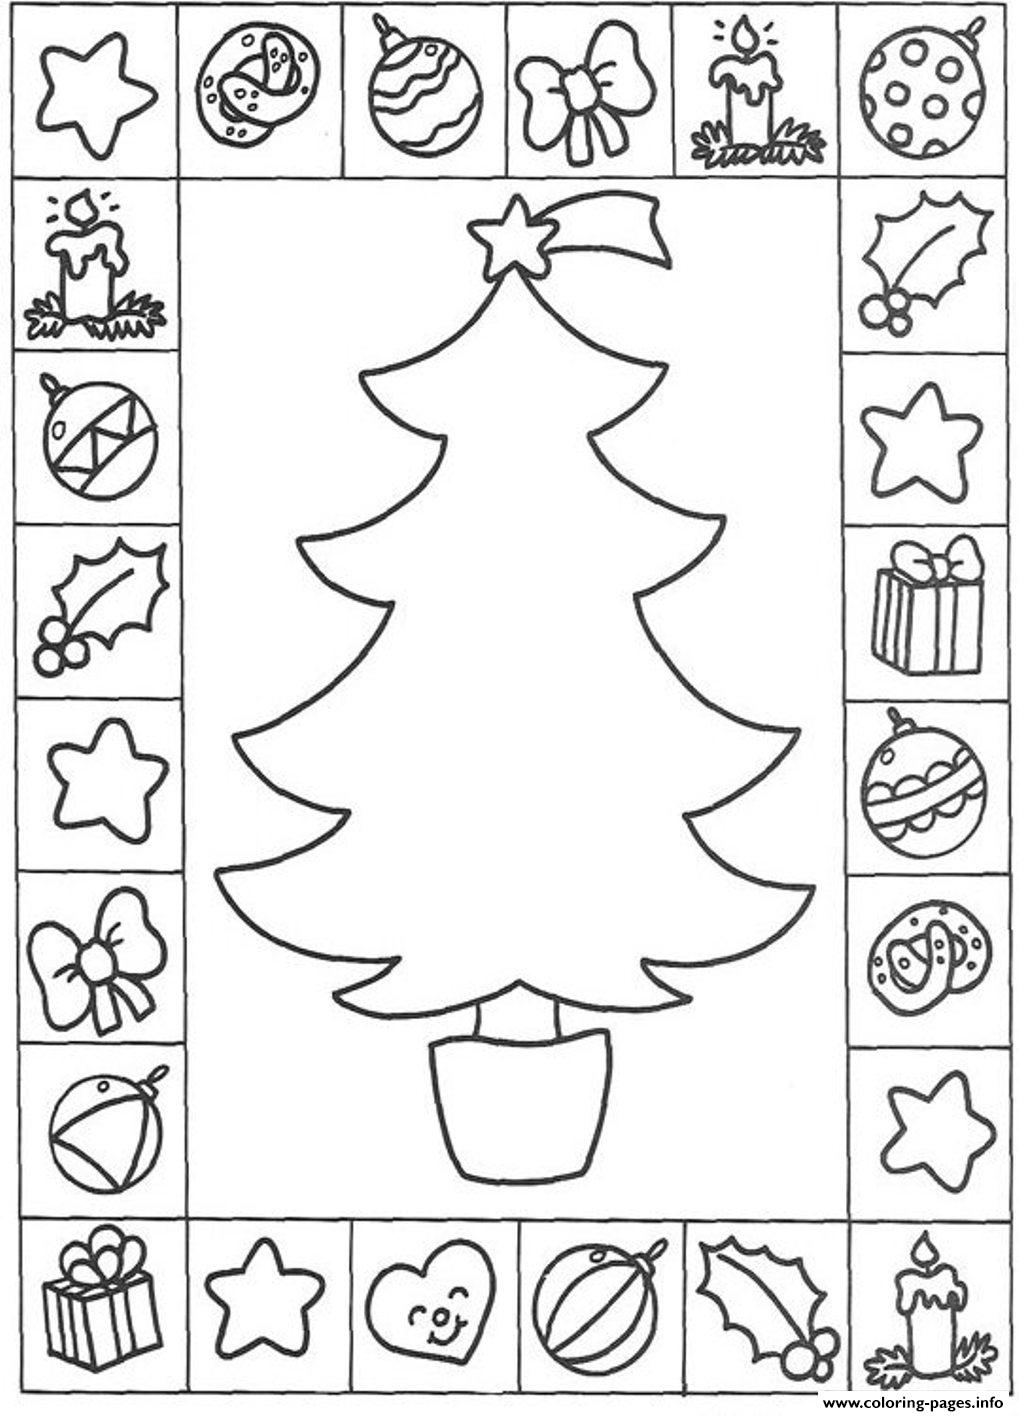 Free S Christmas Tree And Presentsc24c coloring pages